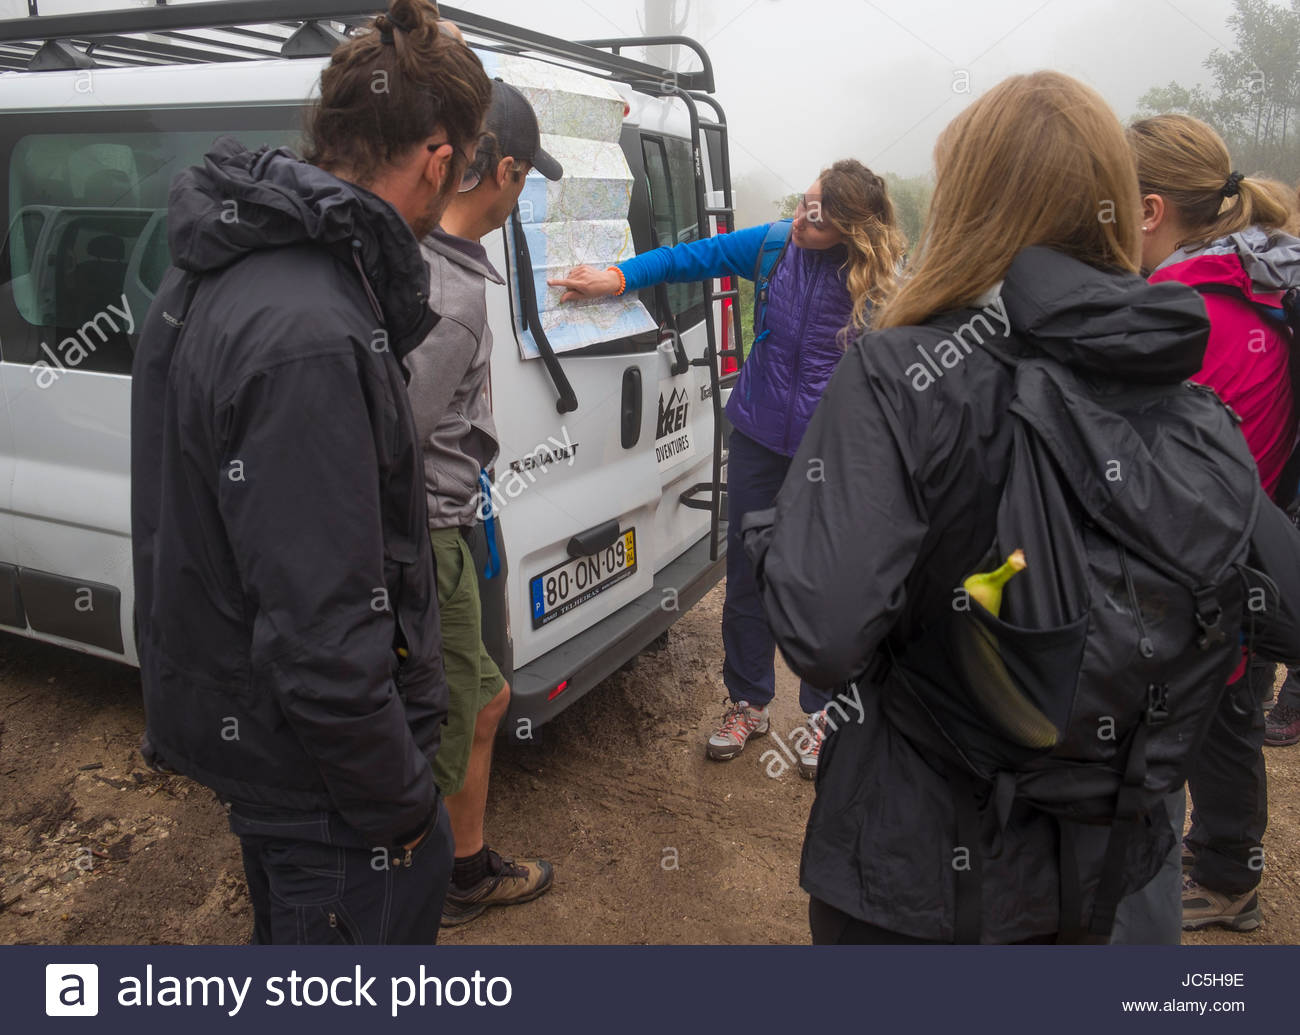 Female guide briefing clients on hiking route of the day using a map on a passenger van, Santuário da - Stock Image